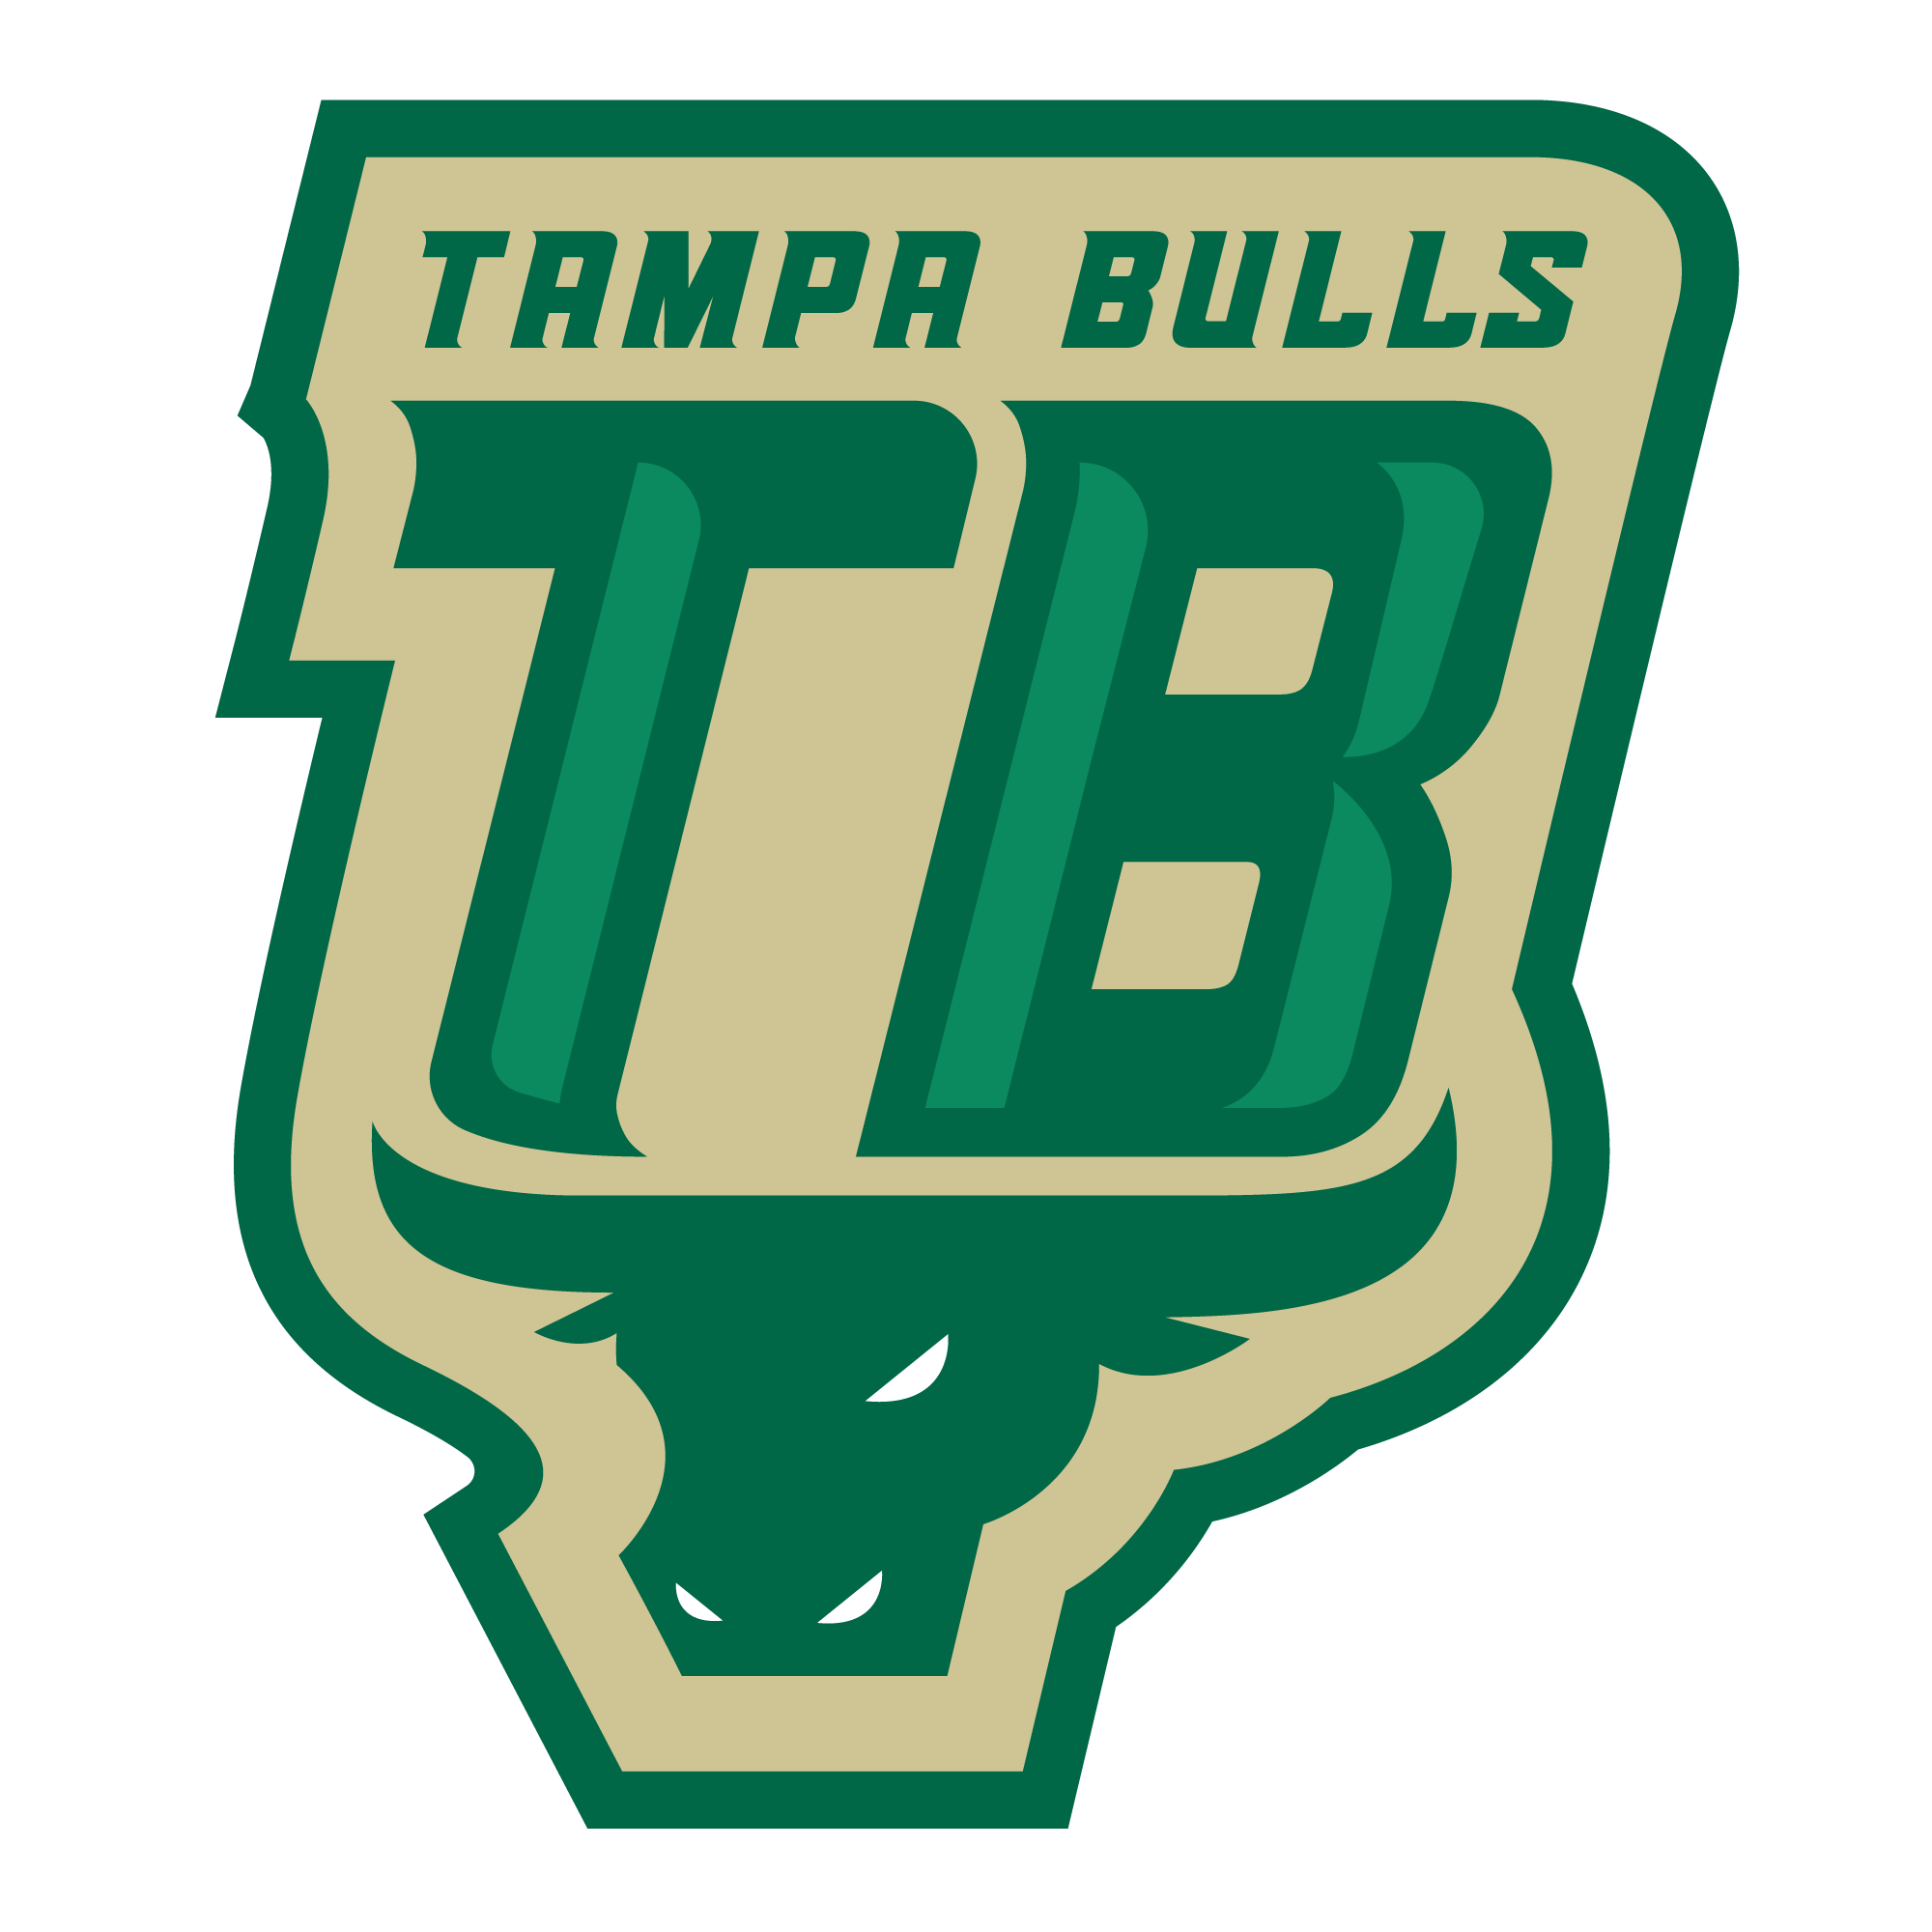 Bulls basketball clipart graphic freeuse library Who are: Tampa Bulls TBT 2017 | The Basketball Tournament graphic freeuse library